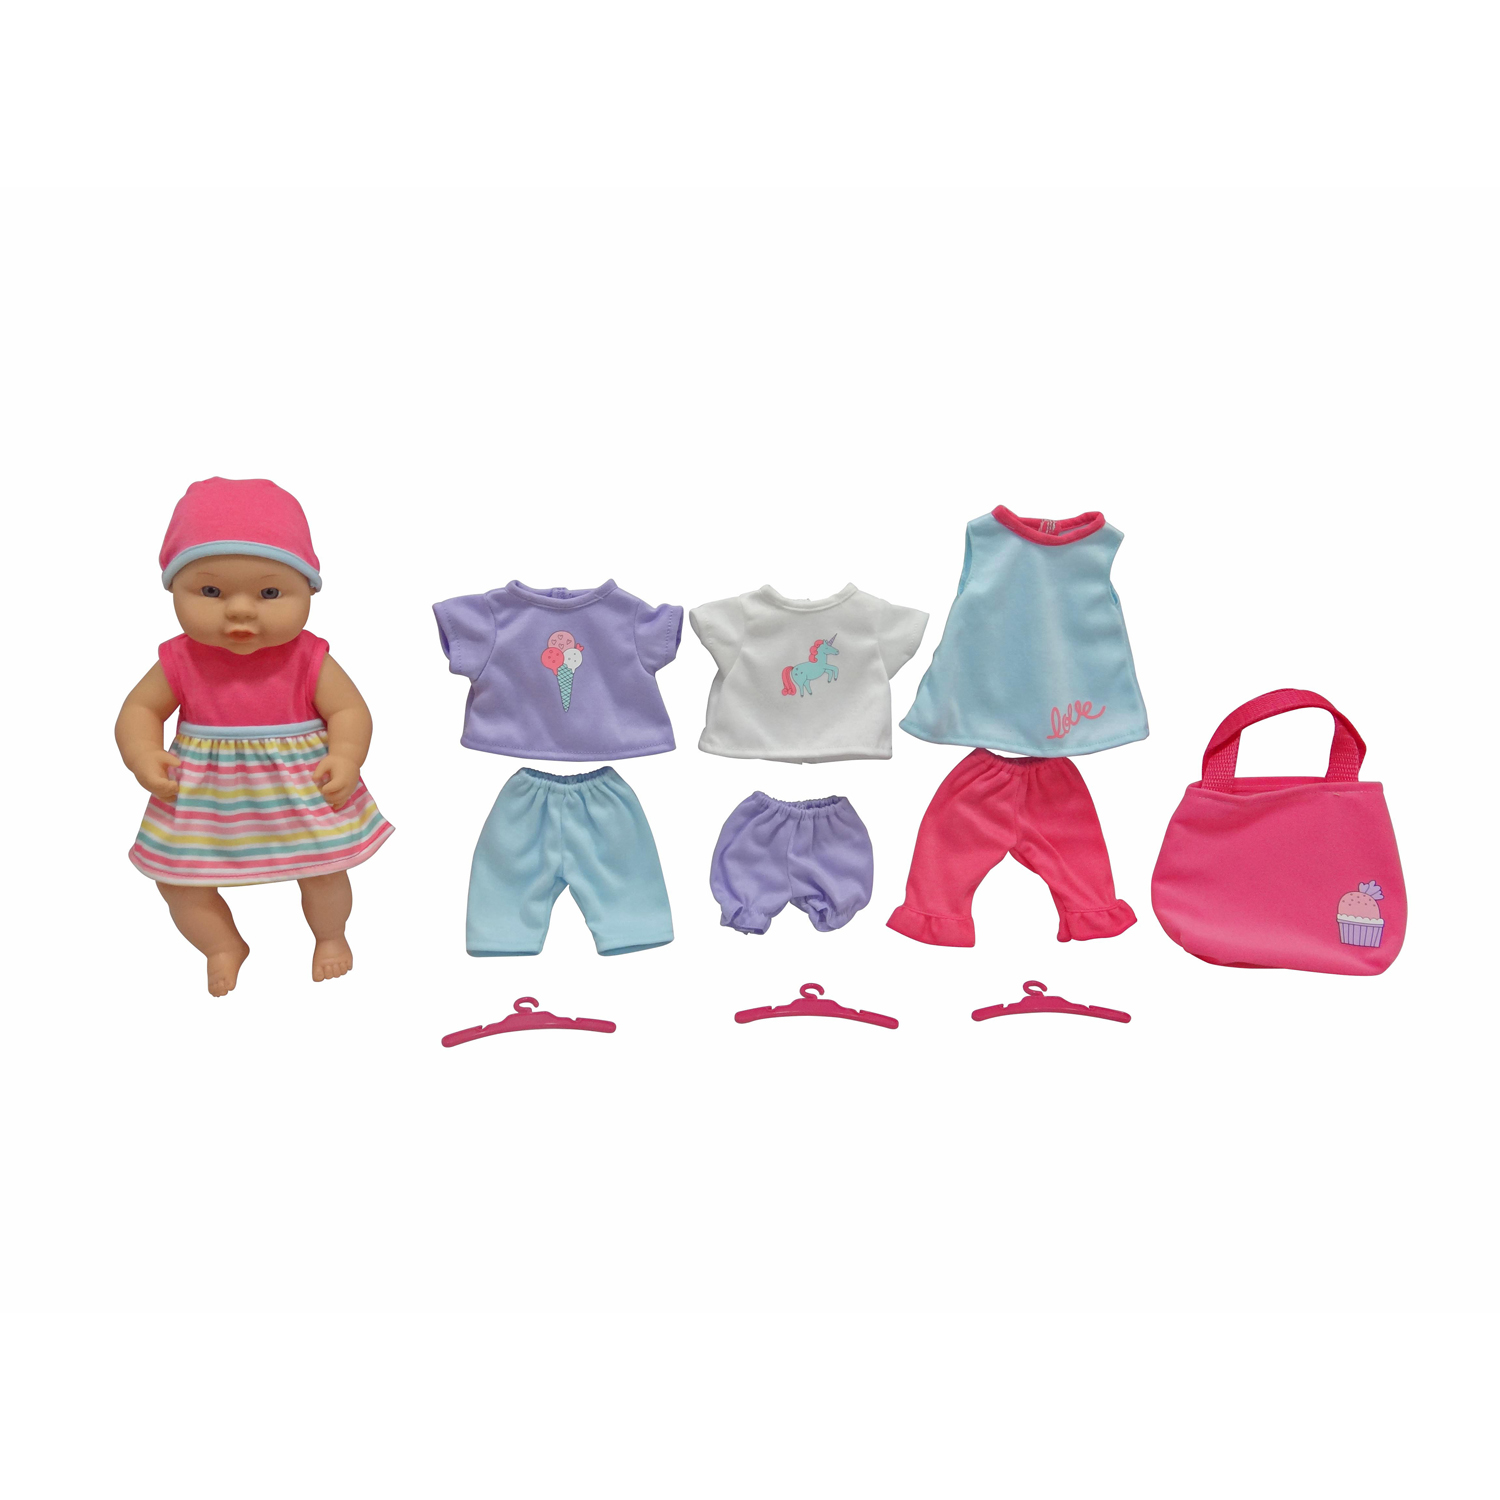 My Sweet Love 10-inch Baby Doll Wardrobe & Accessories